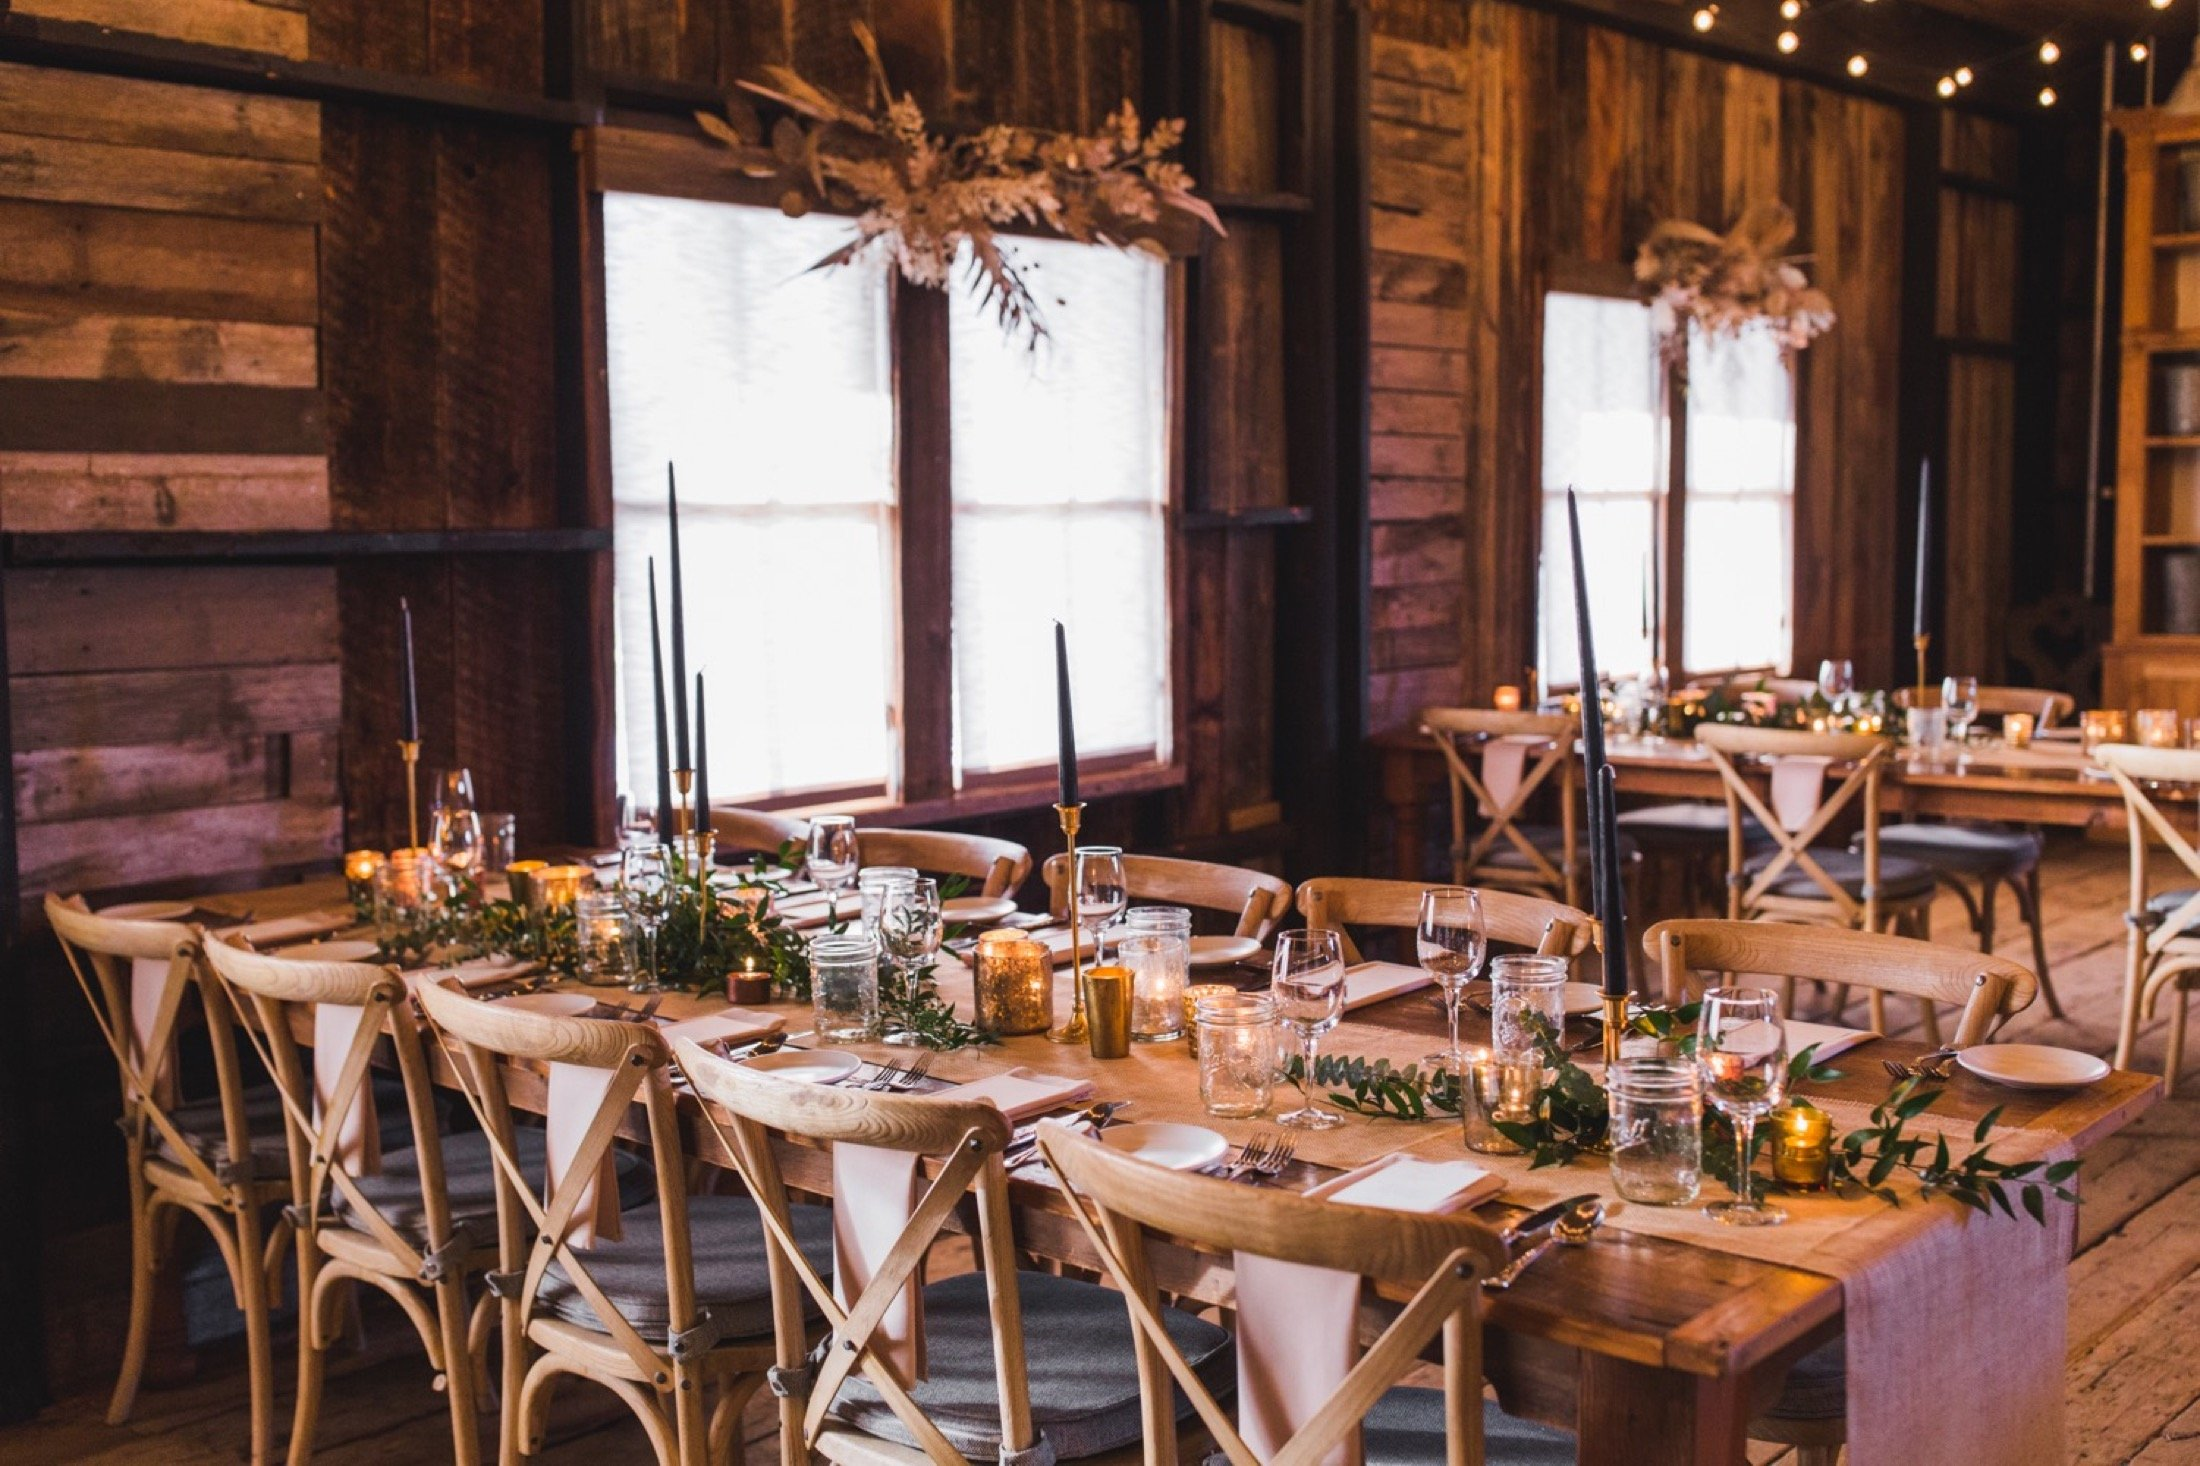 Terrain, winter wedding, indoor, reception